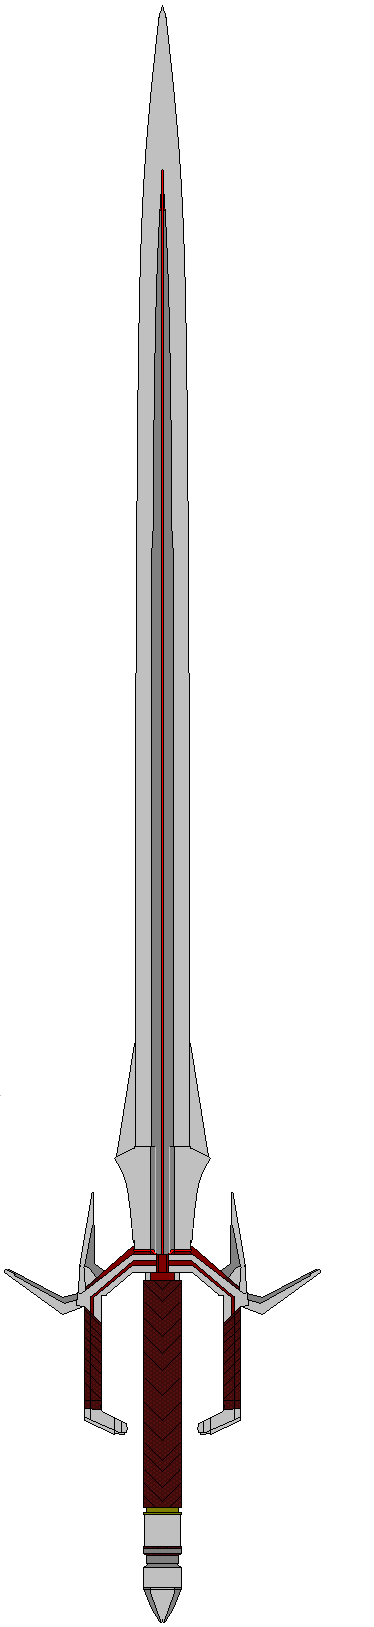 he mans sword of grayskall 4 by bagera3005